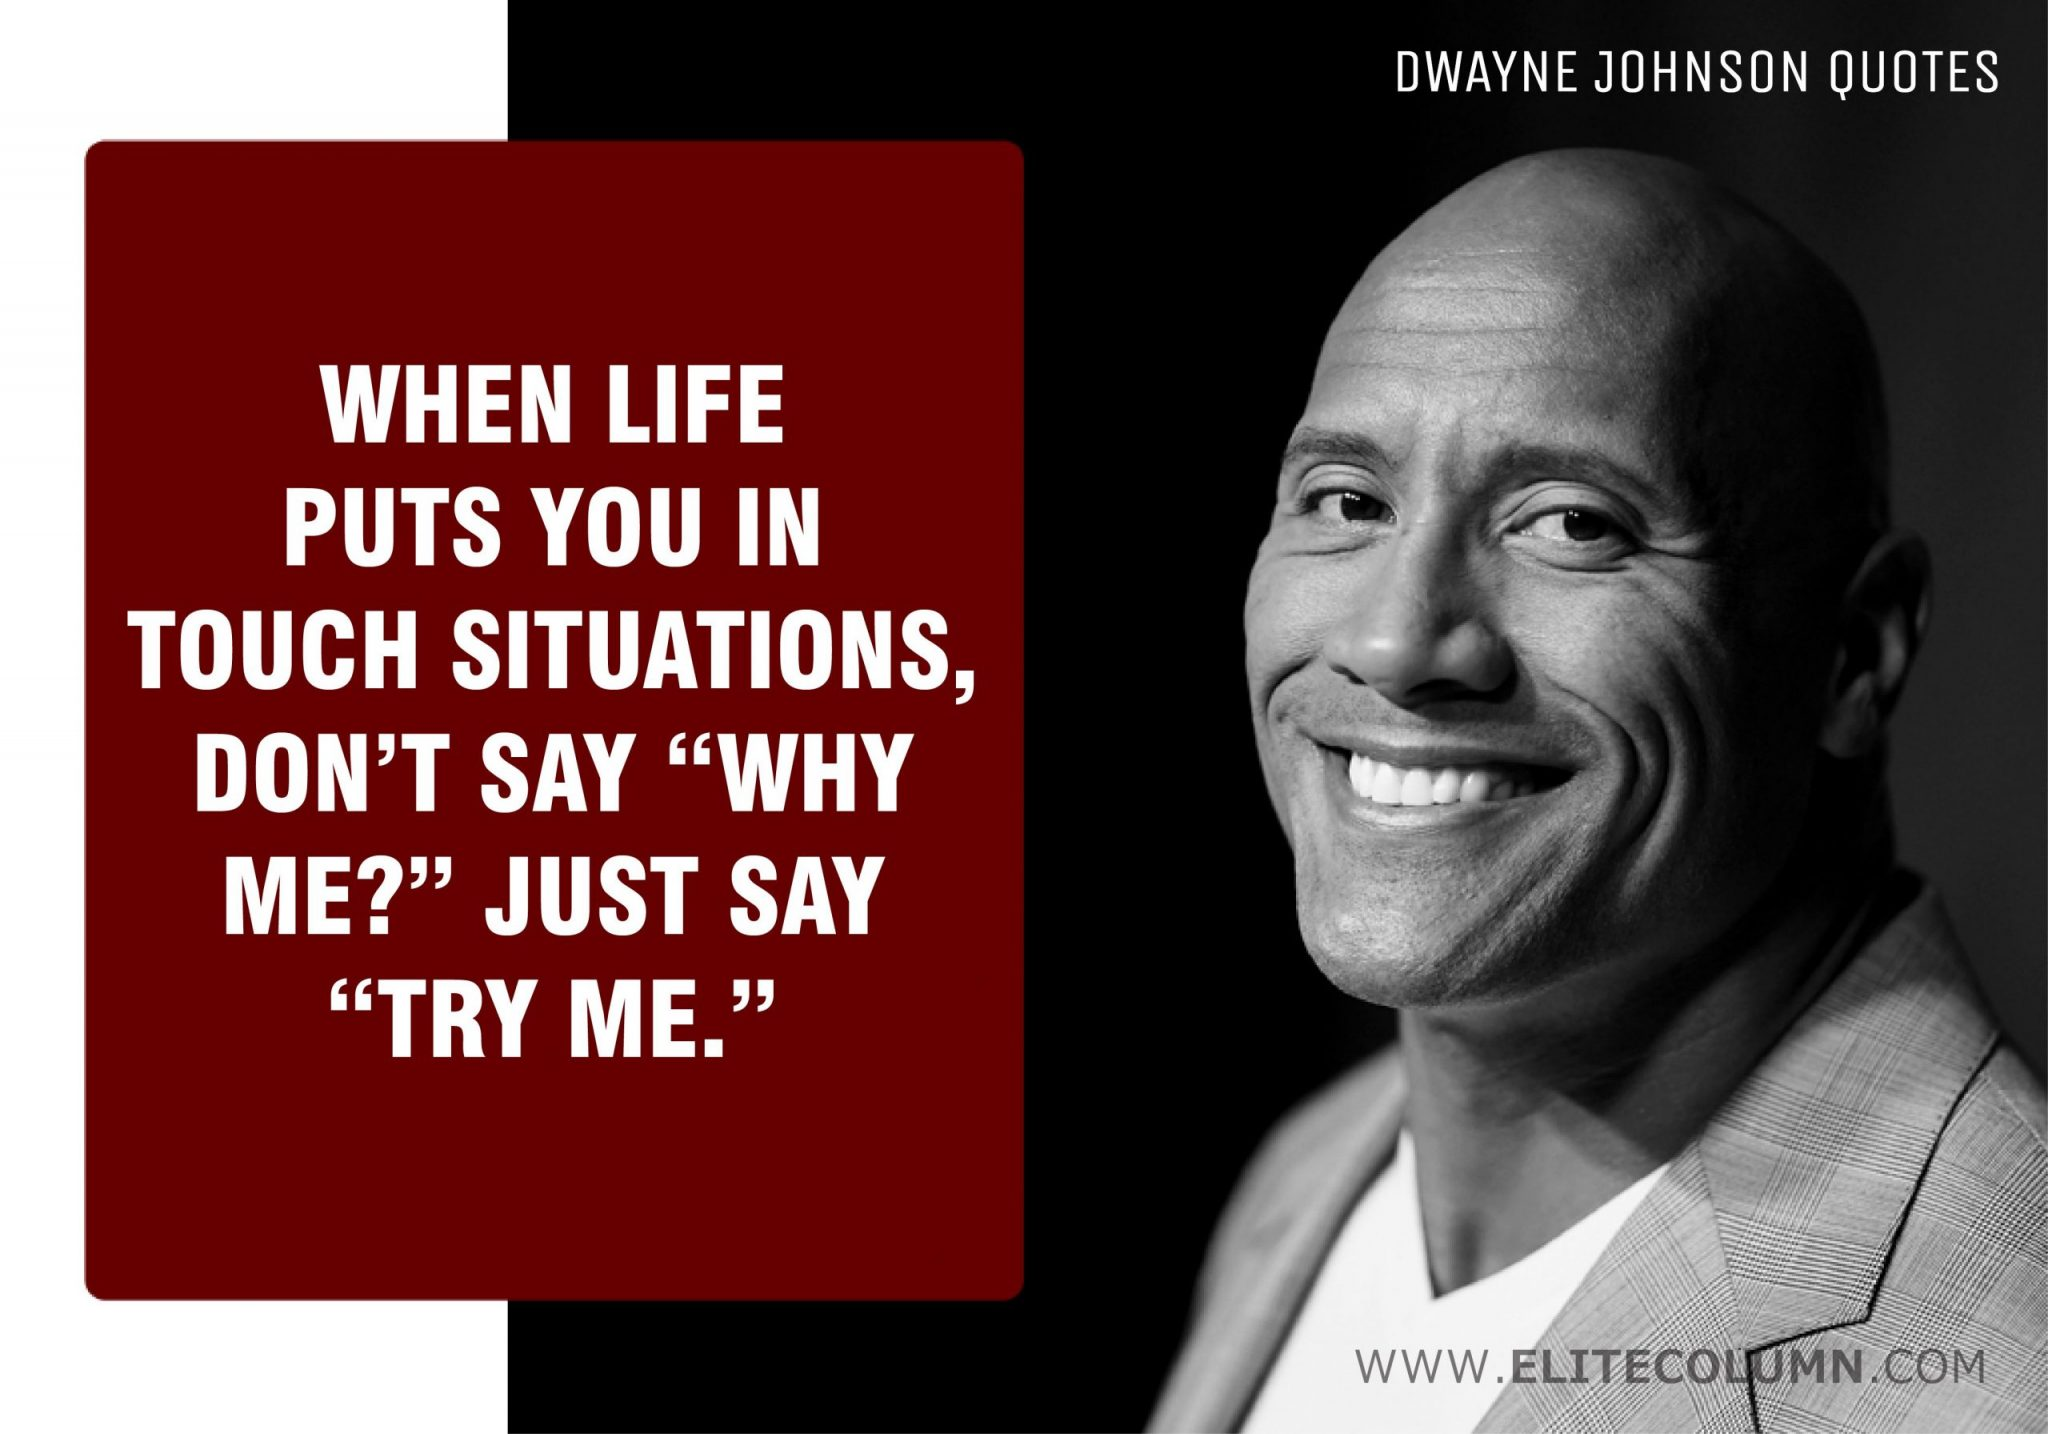 Dwayne Johnson Quotes (8)